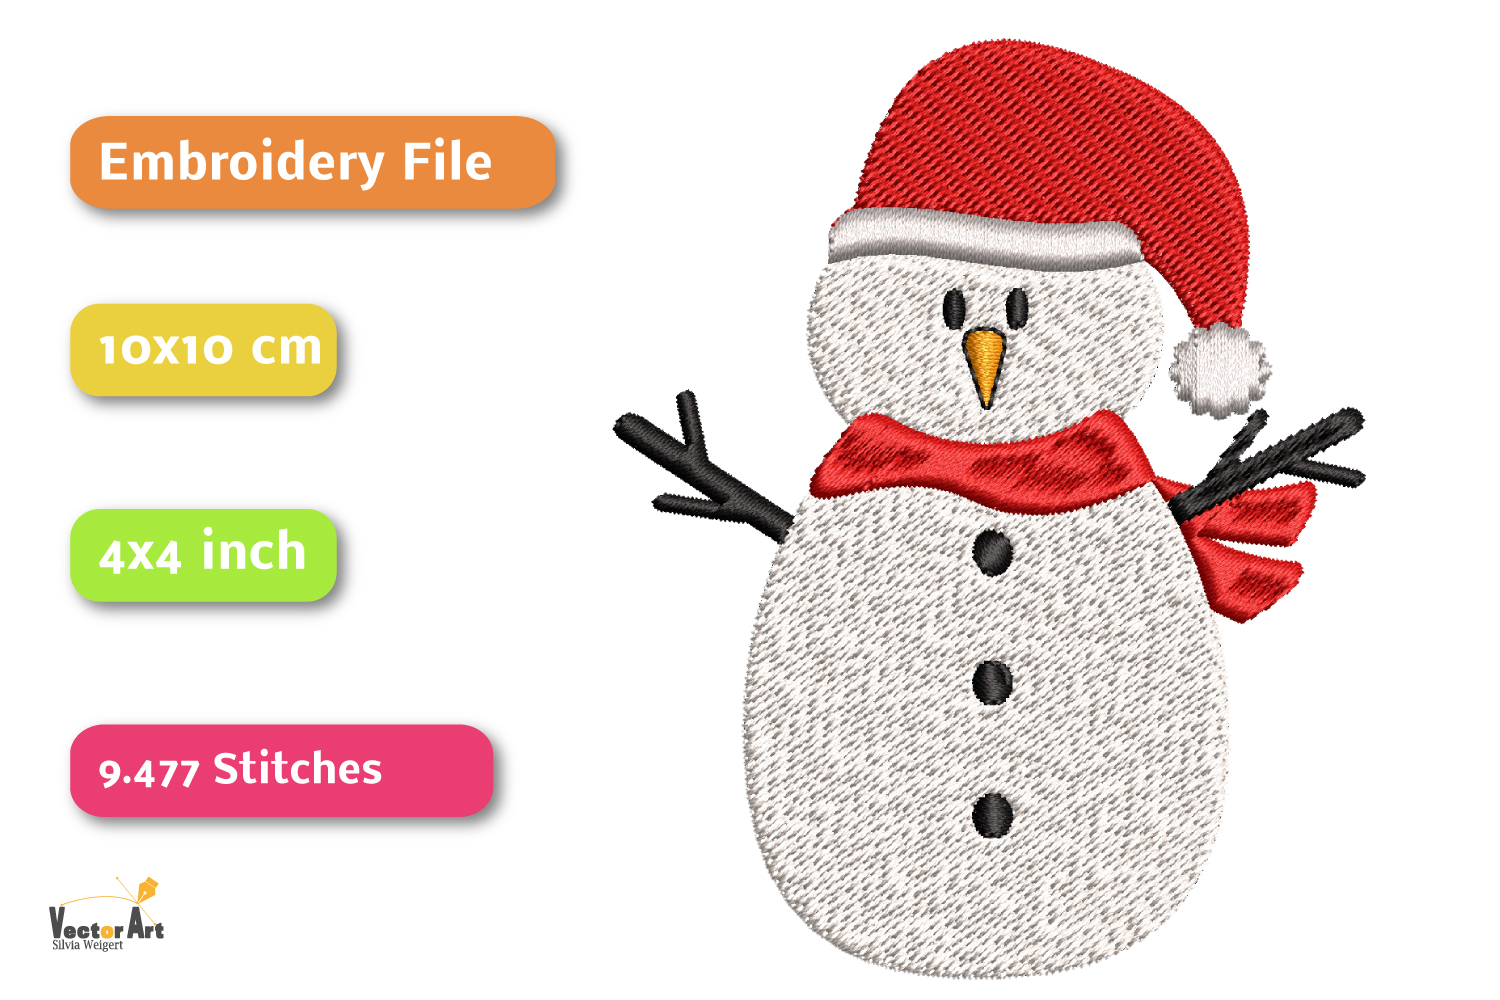 Snowman - Embroidery File - 4x4 inch example image 2